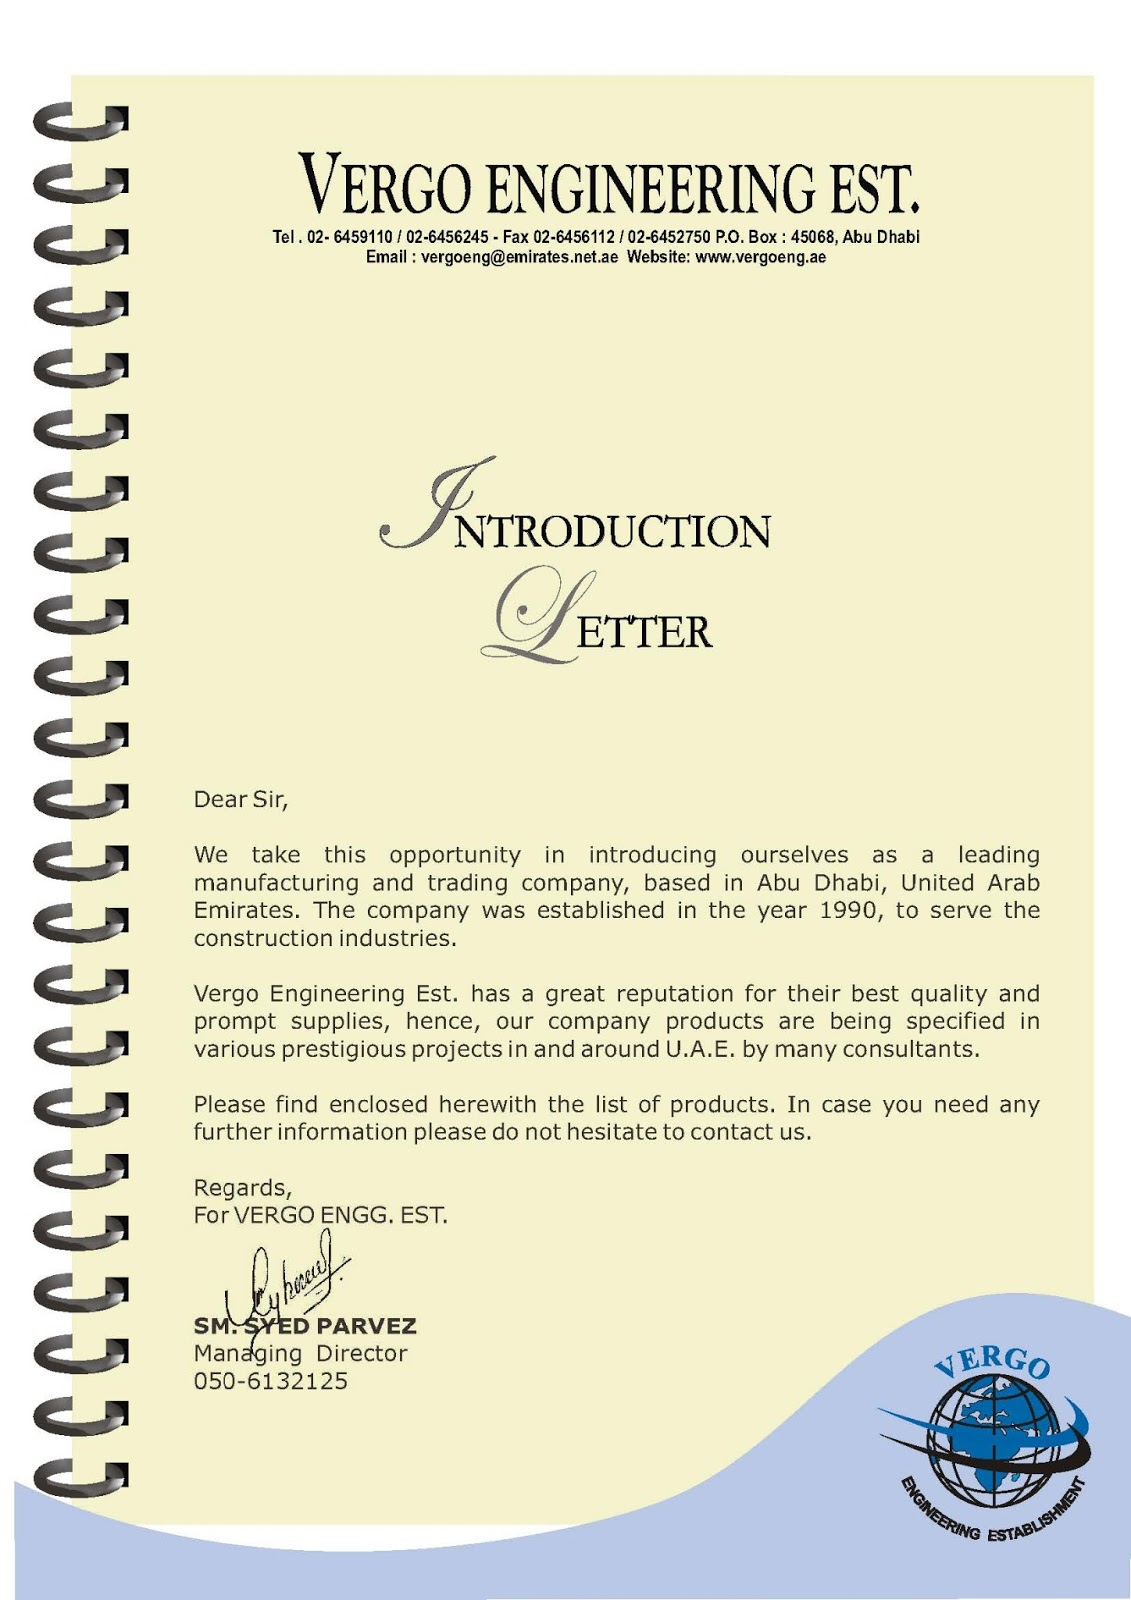 Format For Introduction Letter Of Company Images  Letter Format